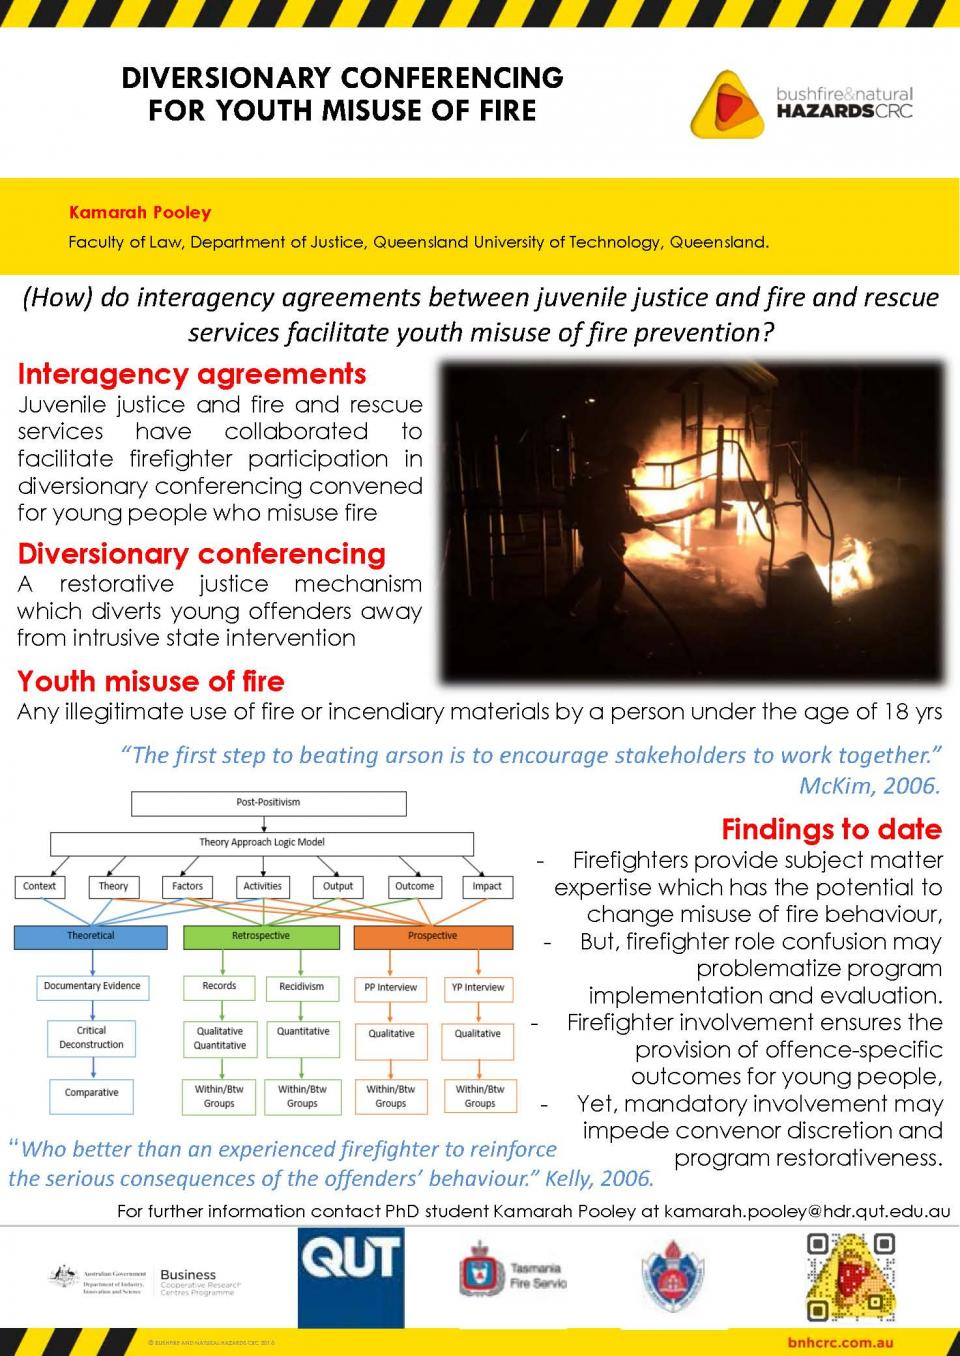 Kamarah Pooley Conference Poster 2016